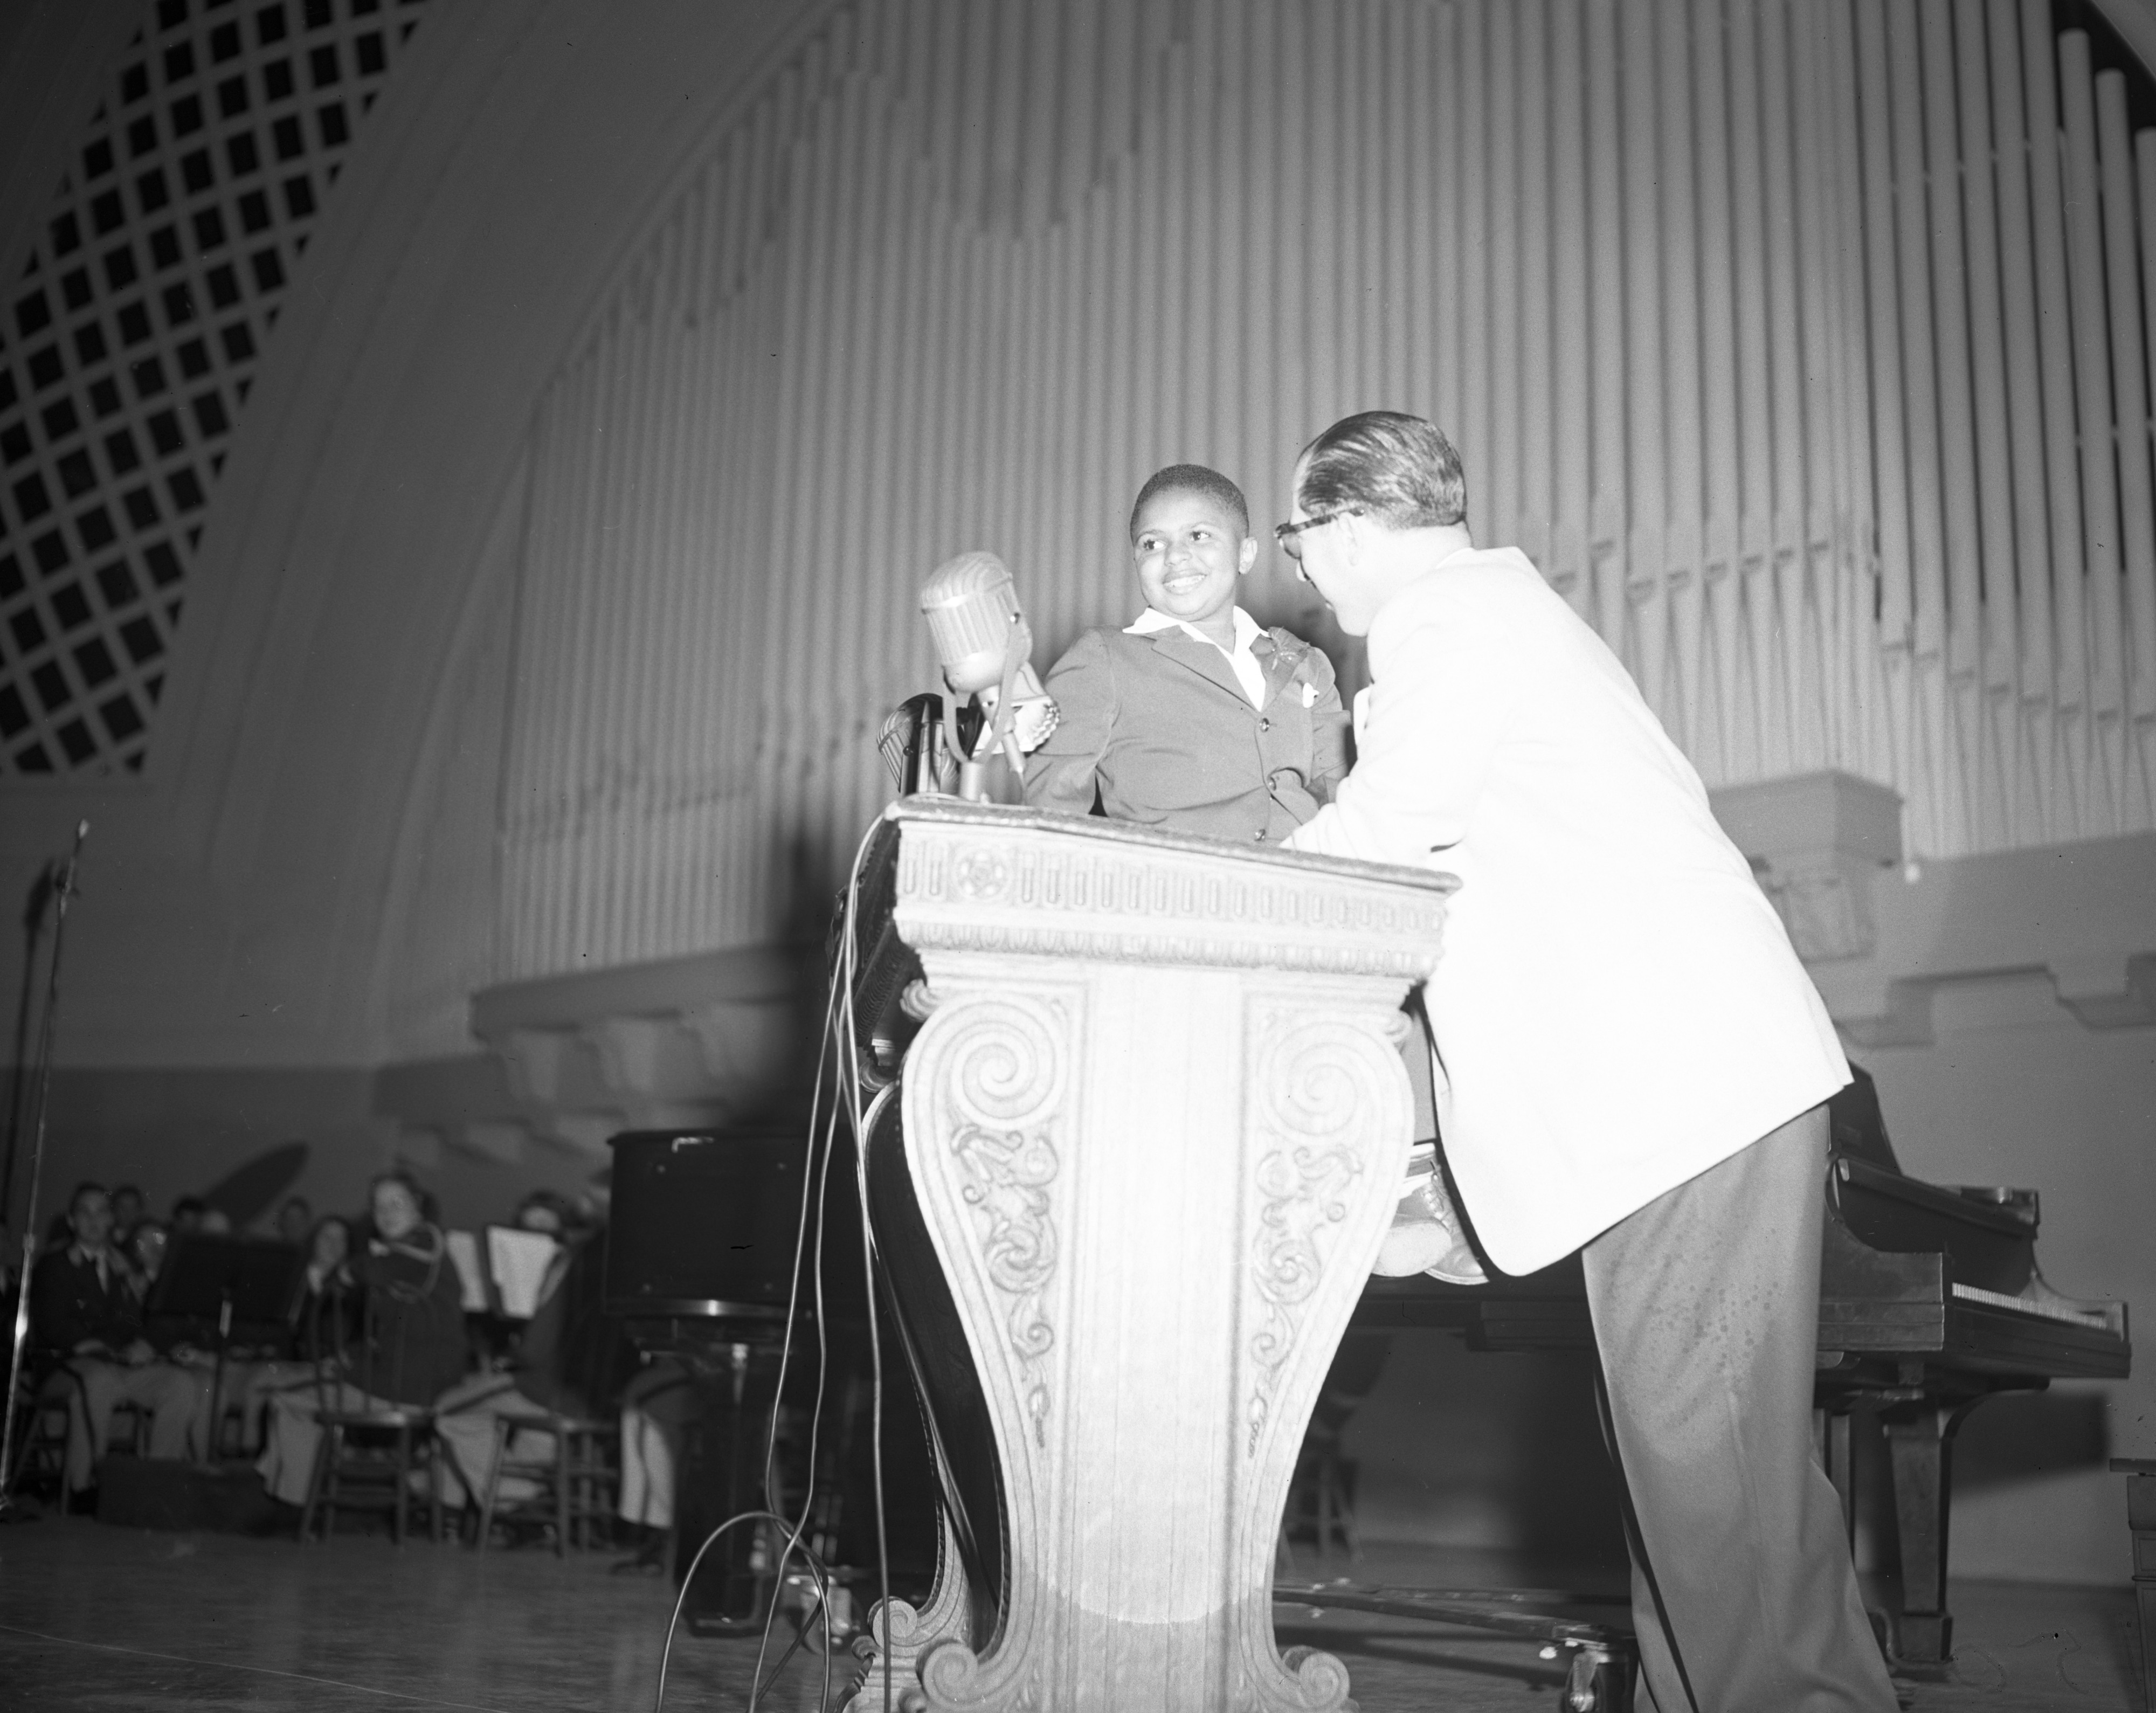 10-year-old Piano Prodigy Frankie (Sugar Chile) Robinson at the Community Chest Rally, Hill Auditorium, October 1950 image